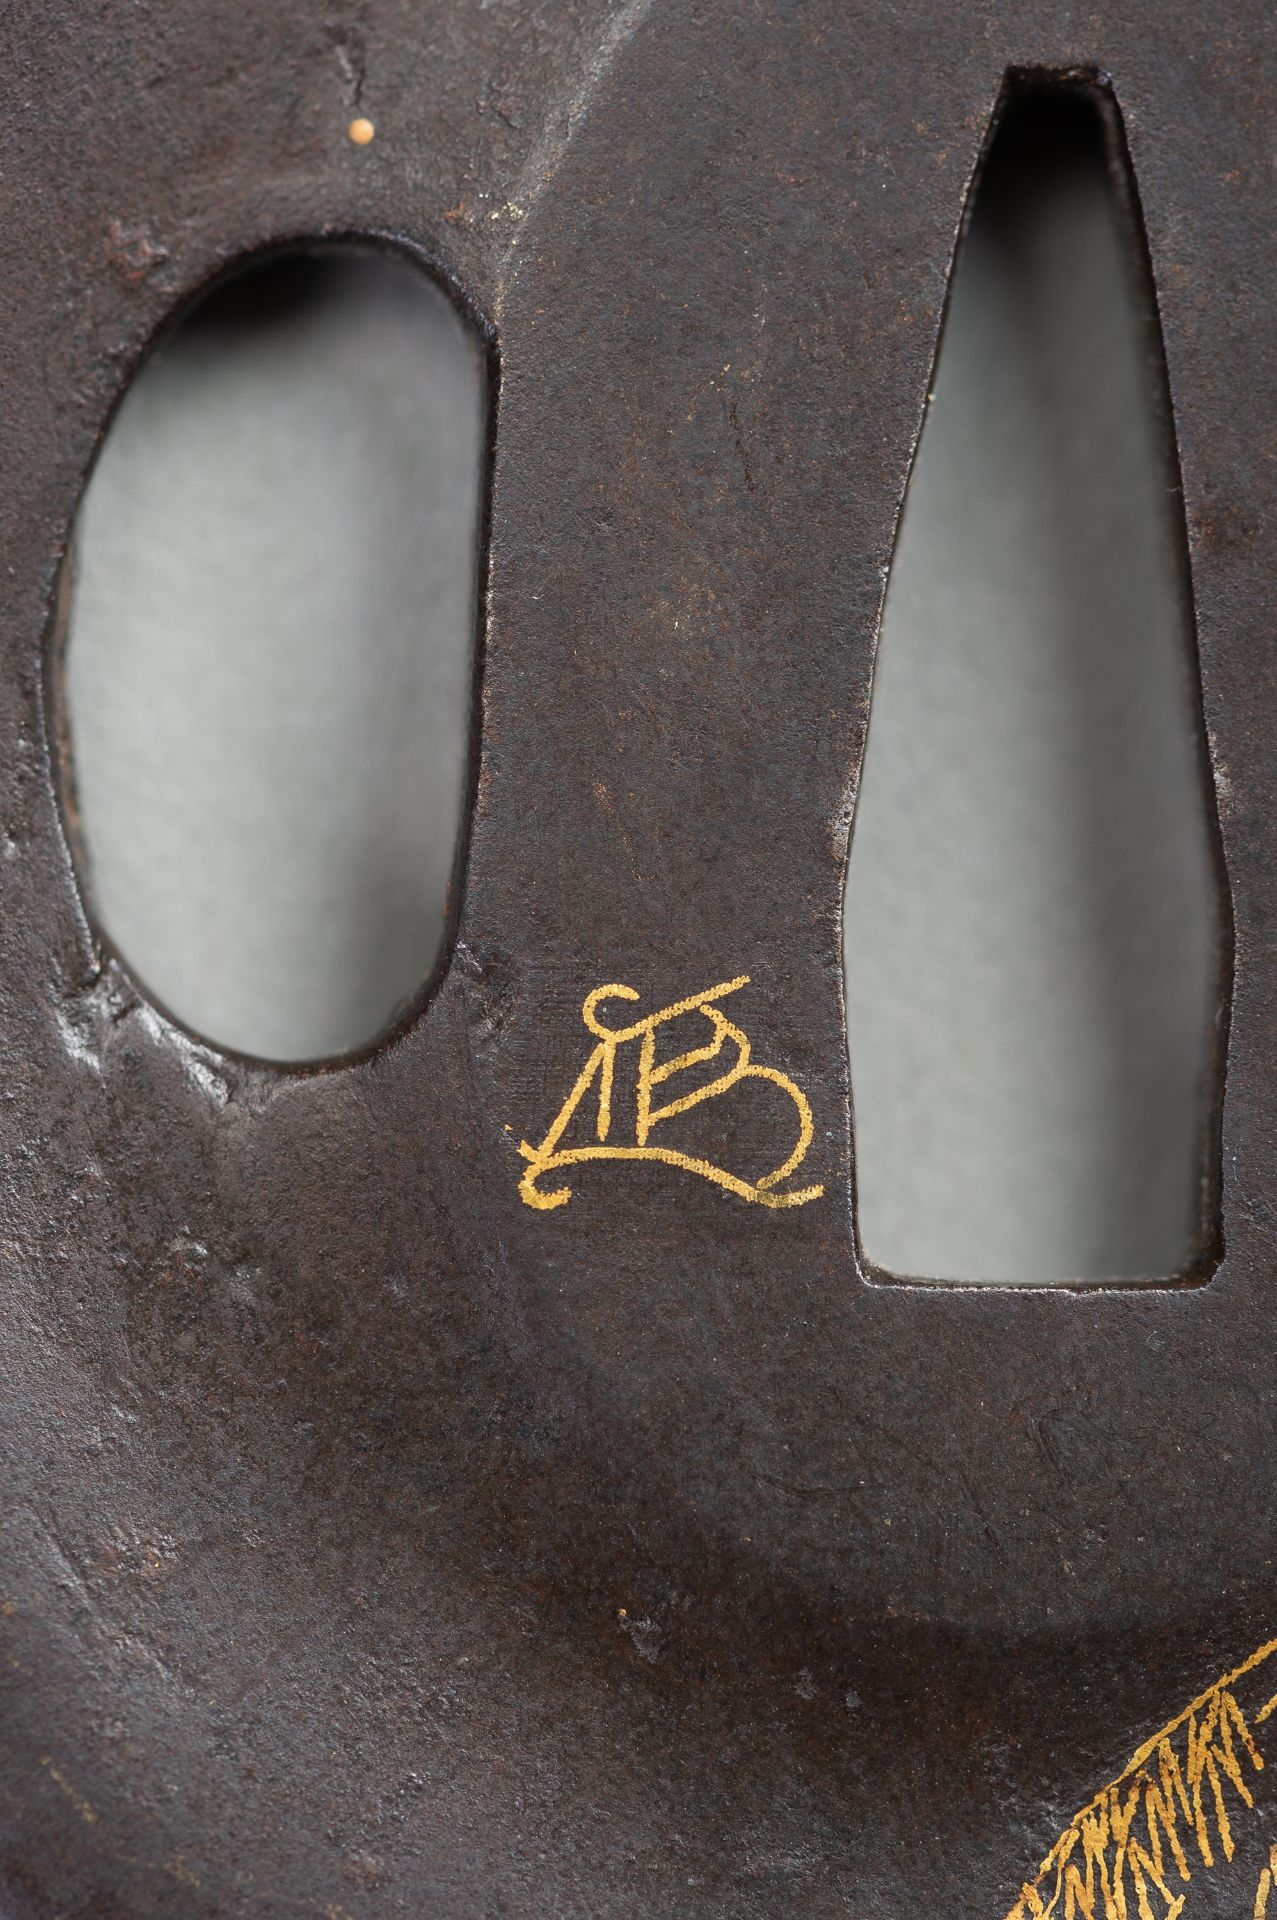 AN IRON TSUBA WITH REED AND LEAF - Image 4 of 5